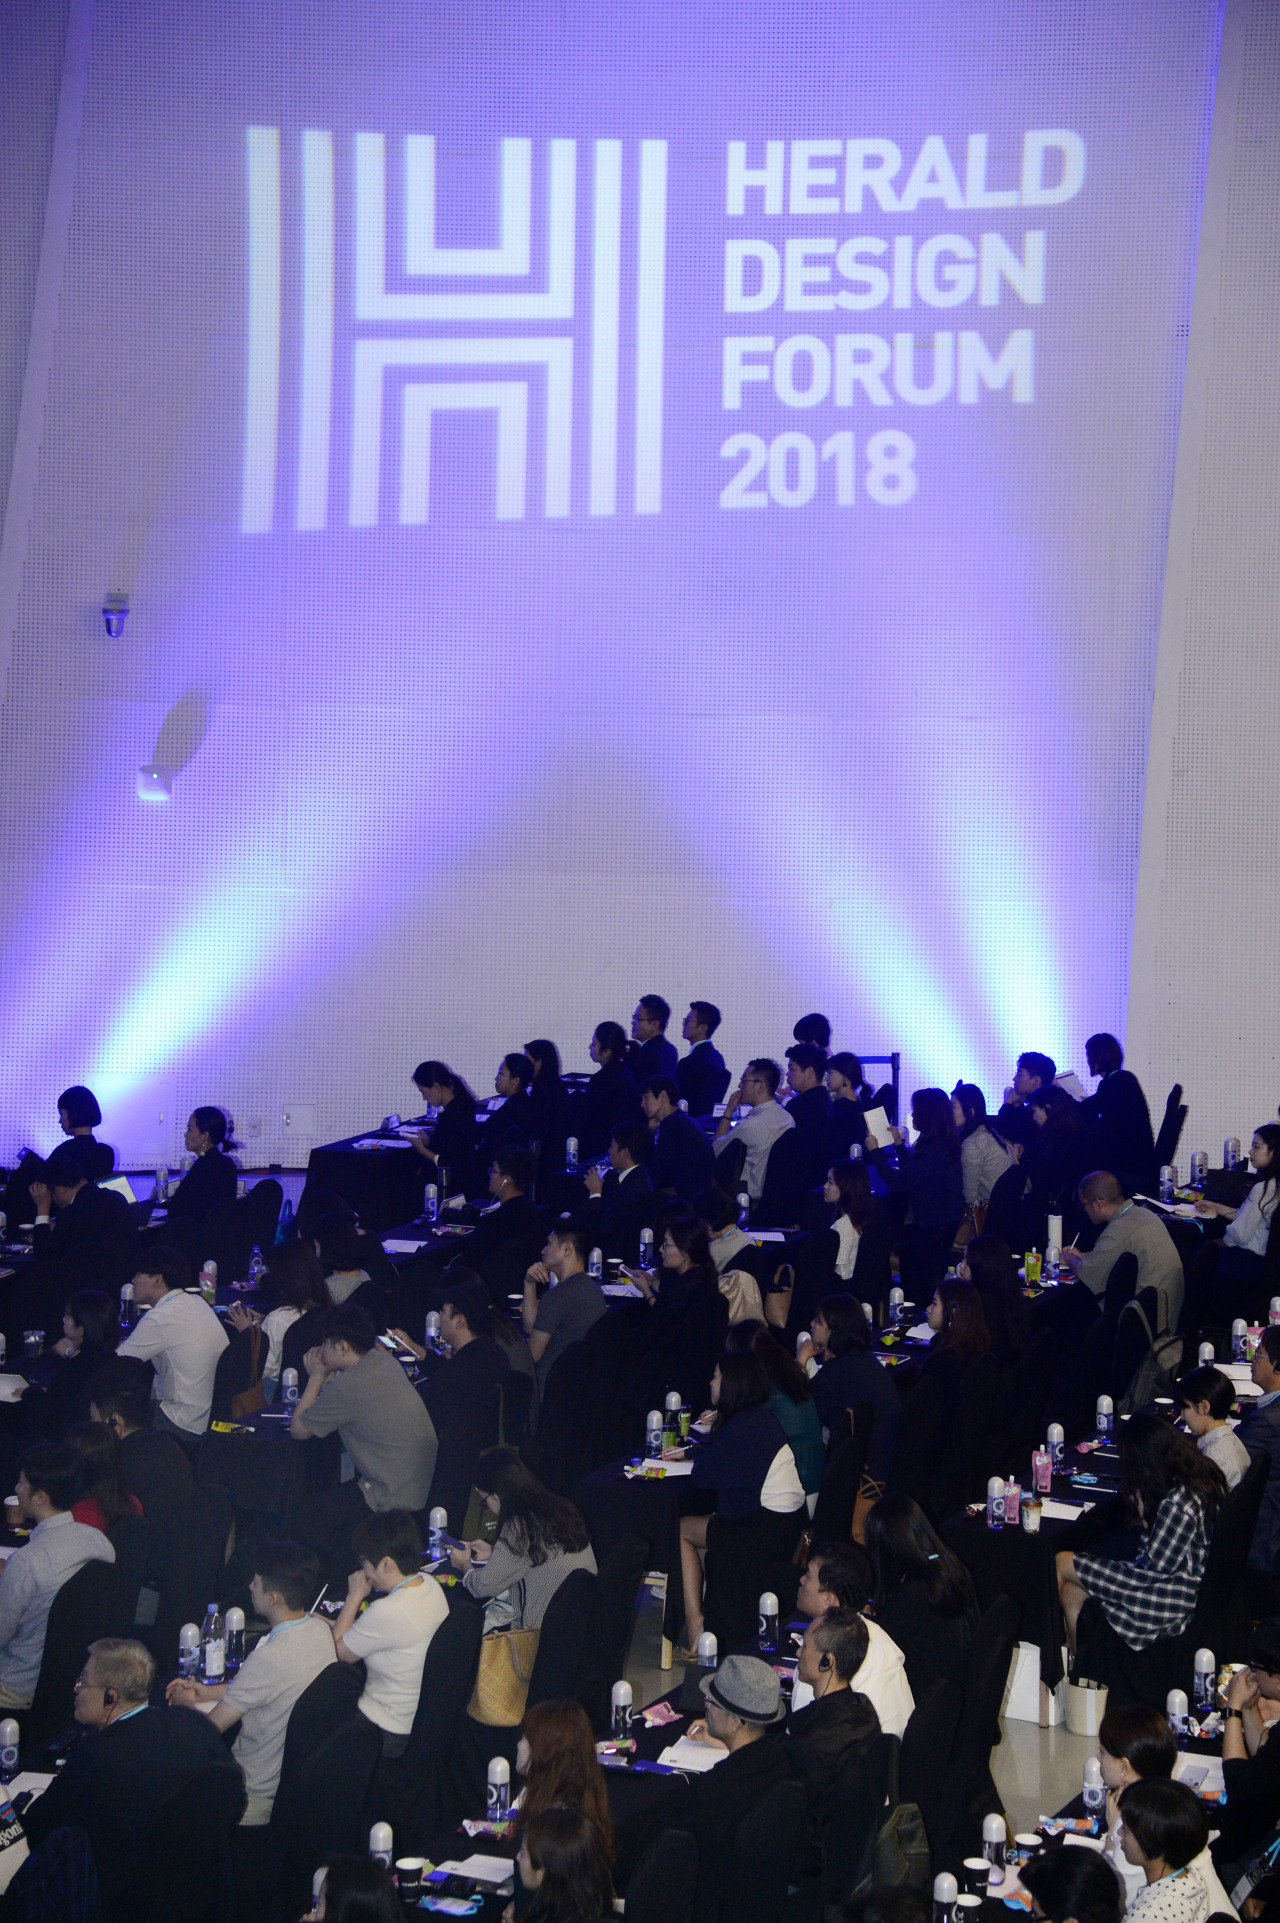 People attend Herald Design Forum 2018 at Dongdaemun Design Plaza in Seoul on Sept. 14, 2018 (Herald DB)